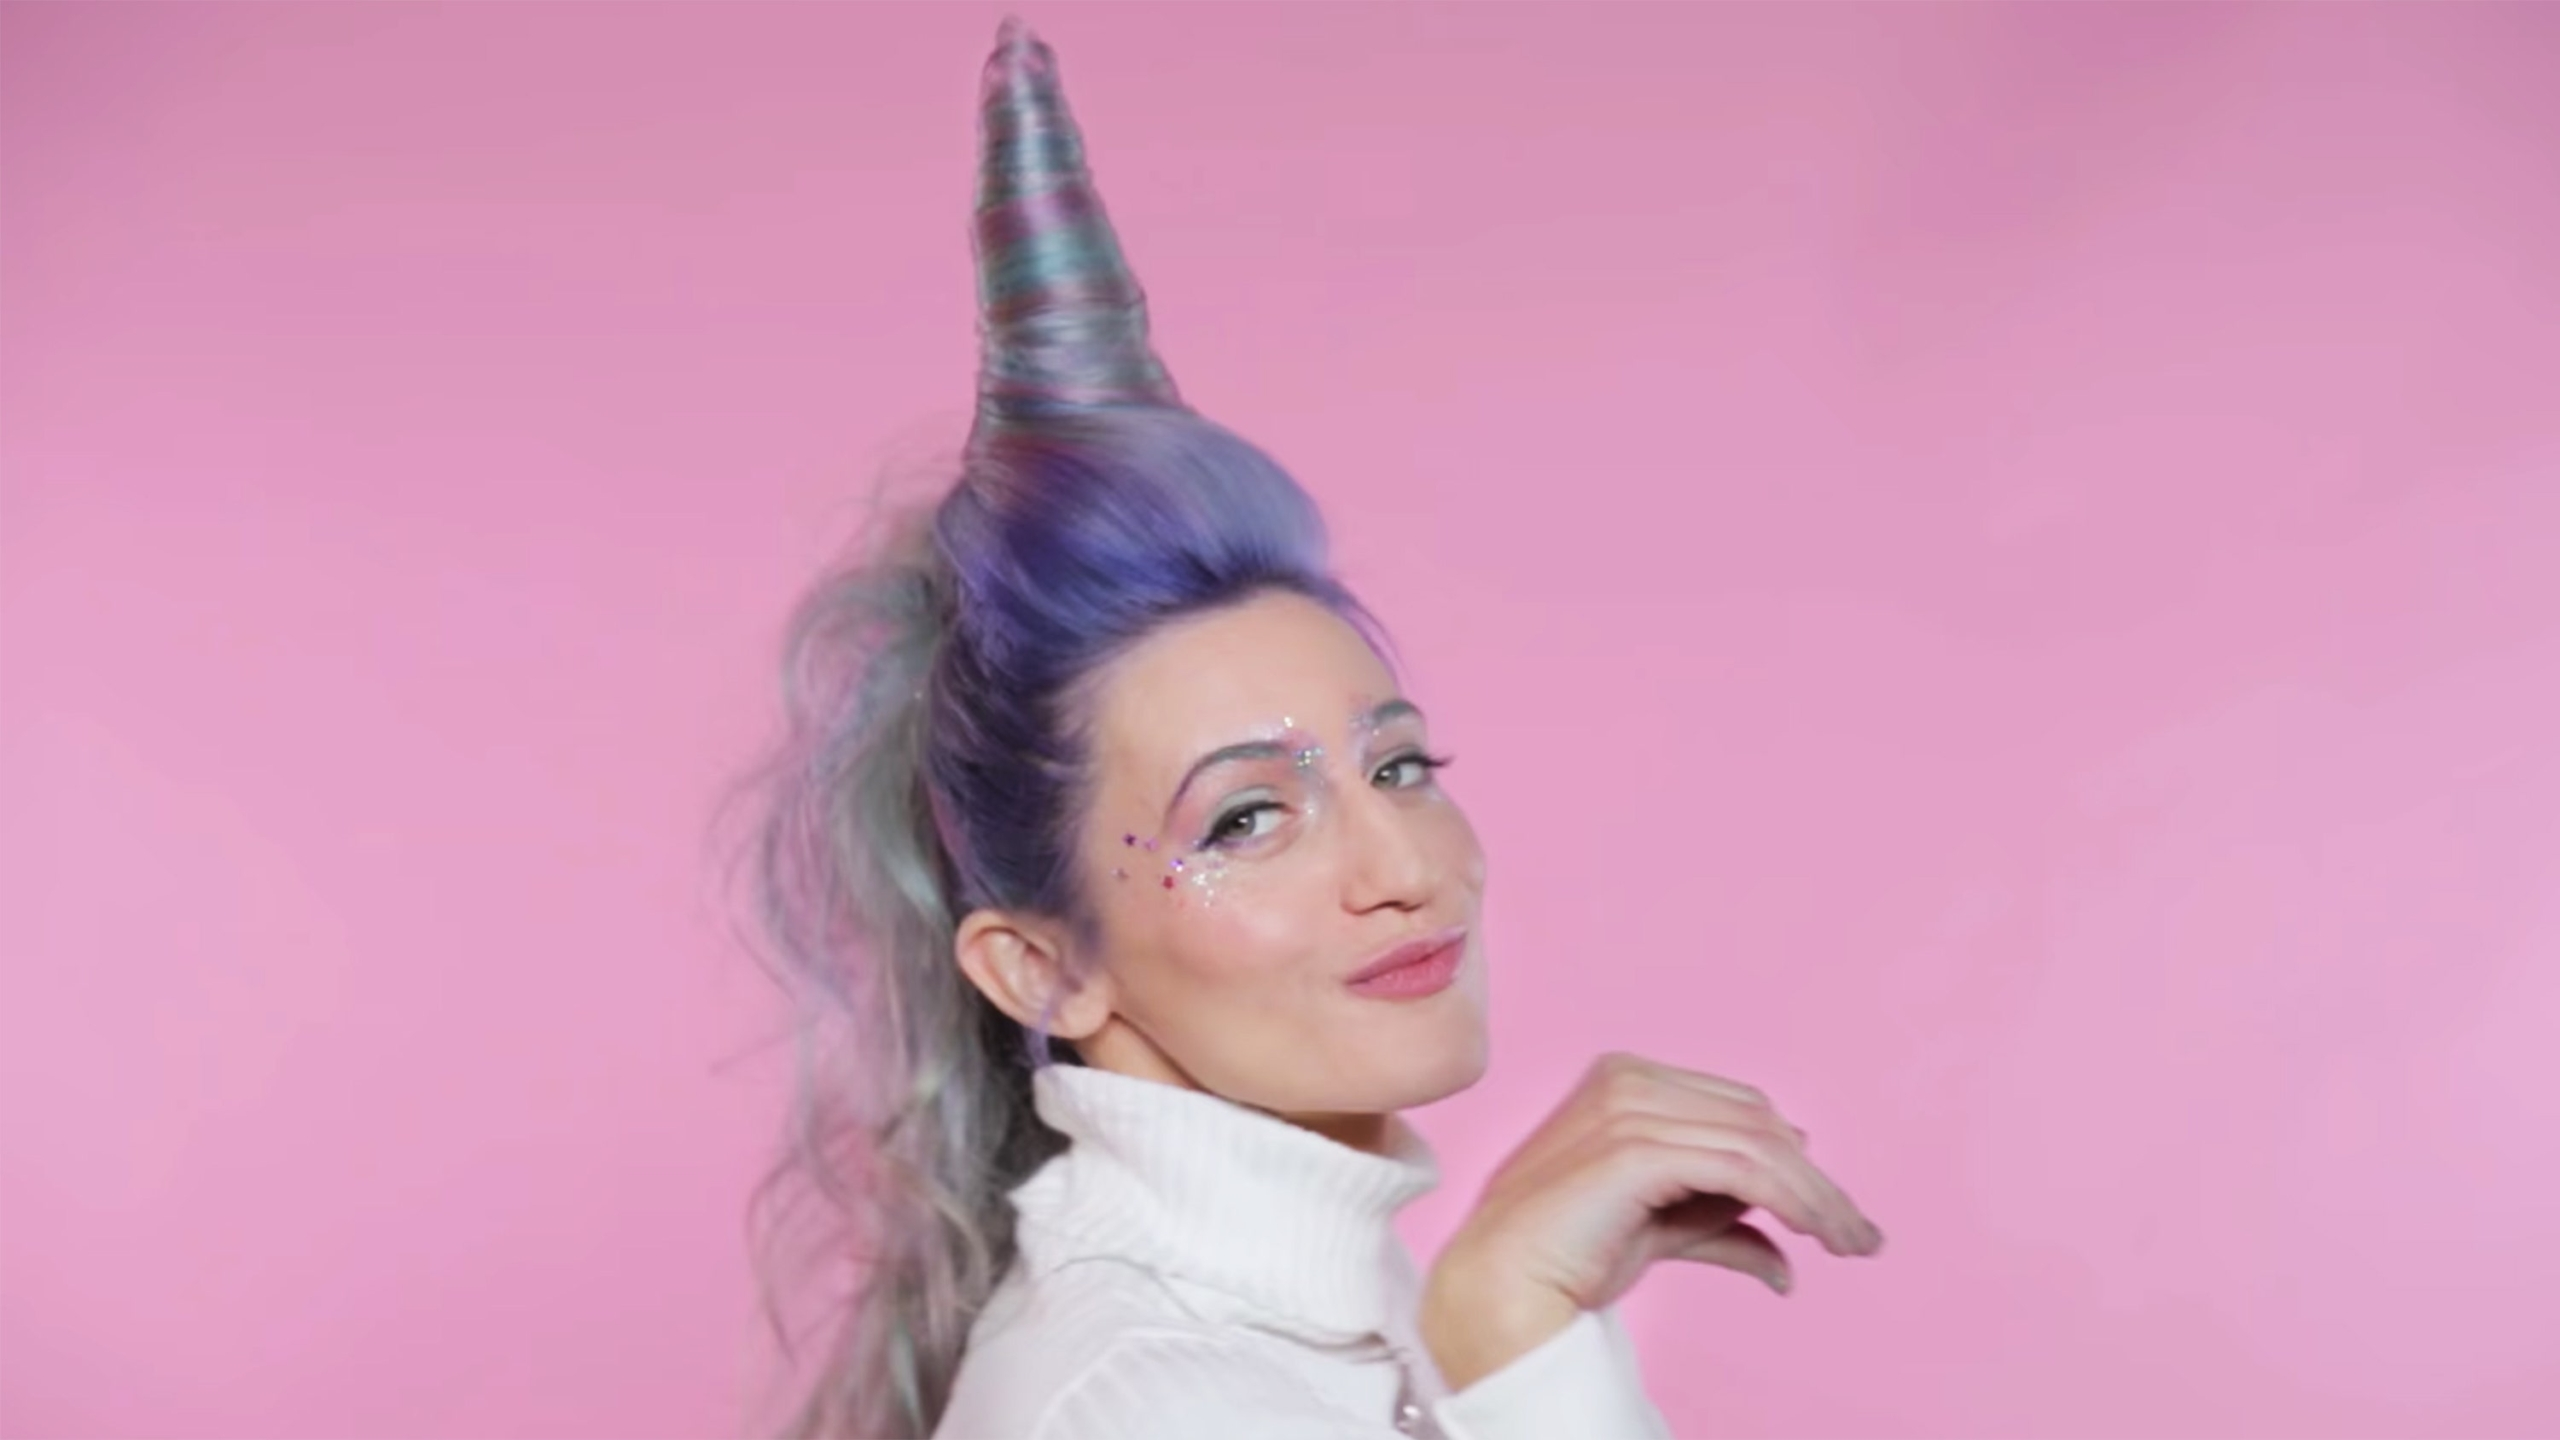 Modern Design Ideas – How to Create a Unique Unicorn Hairstyle